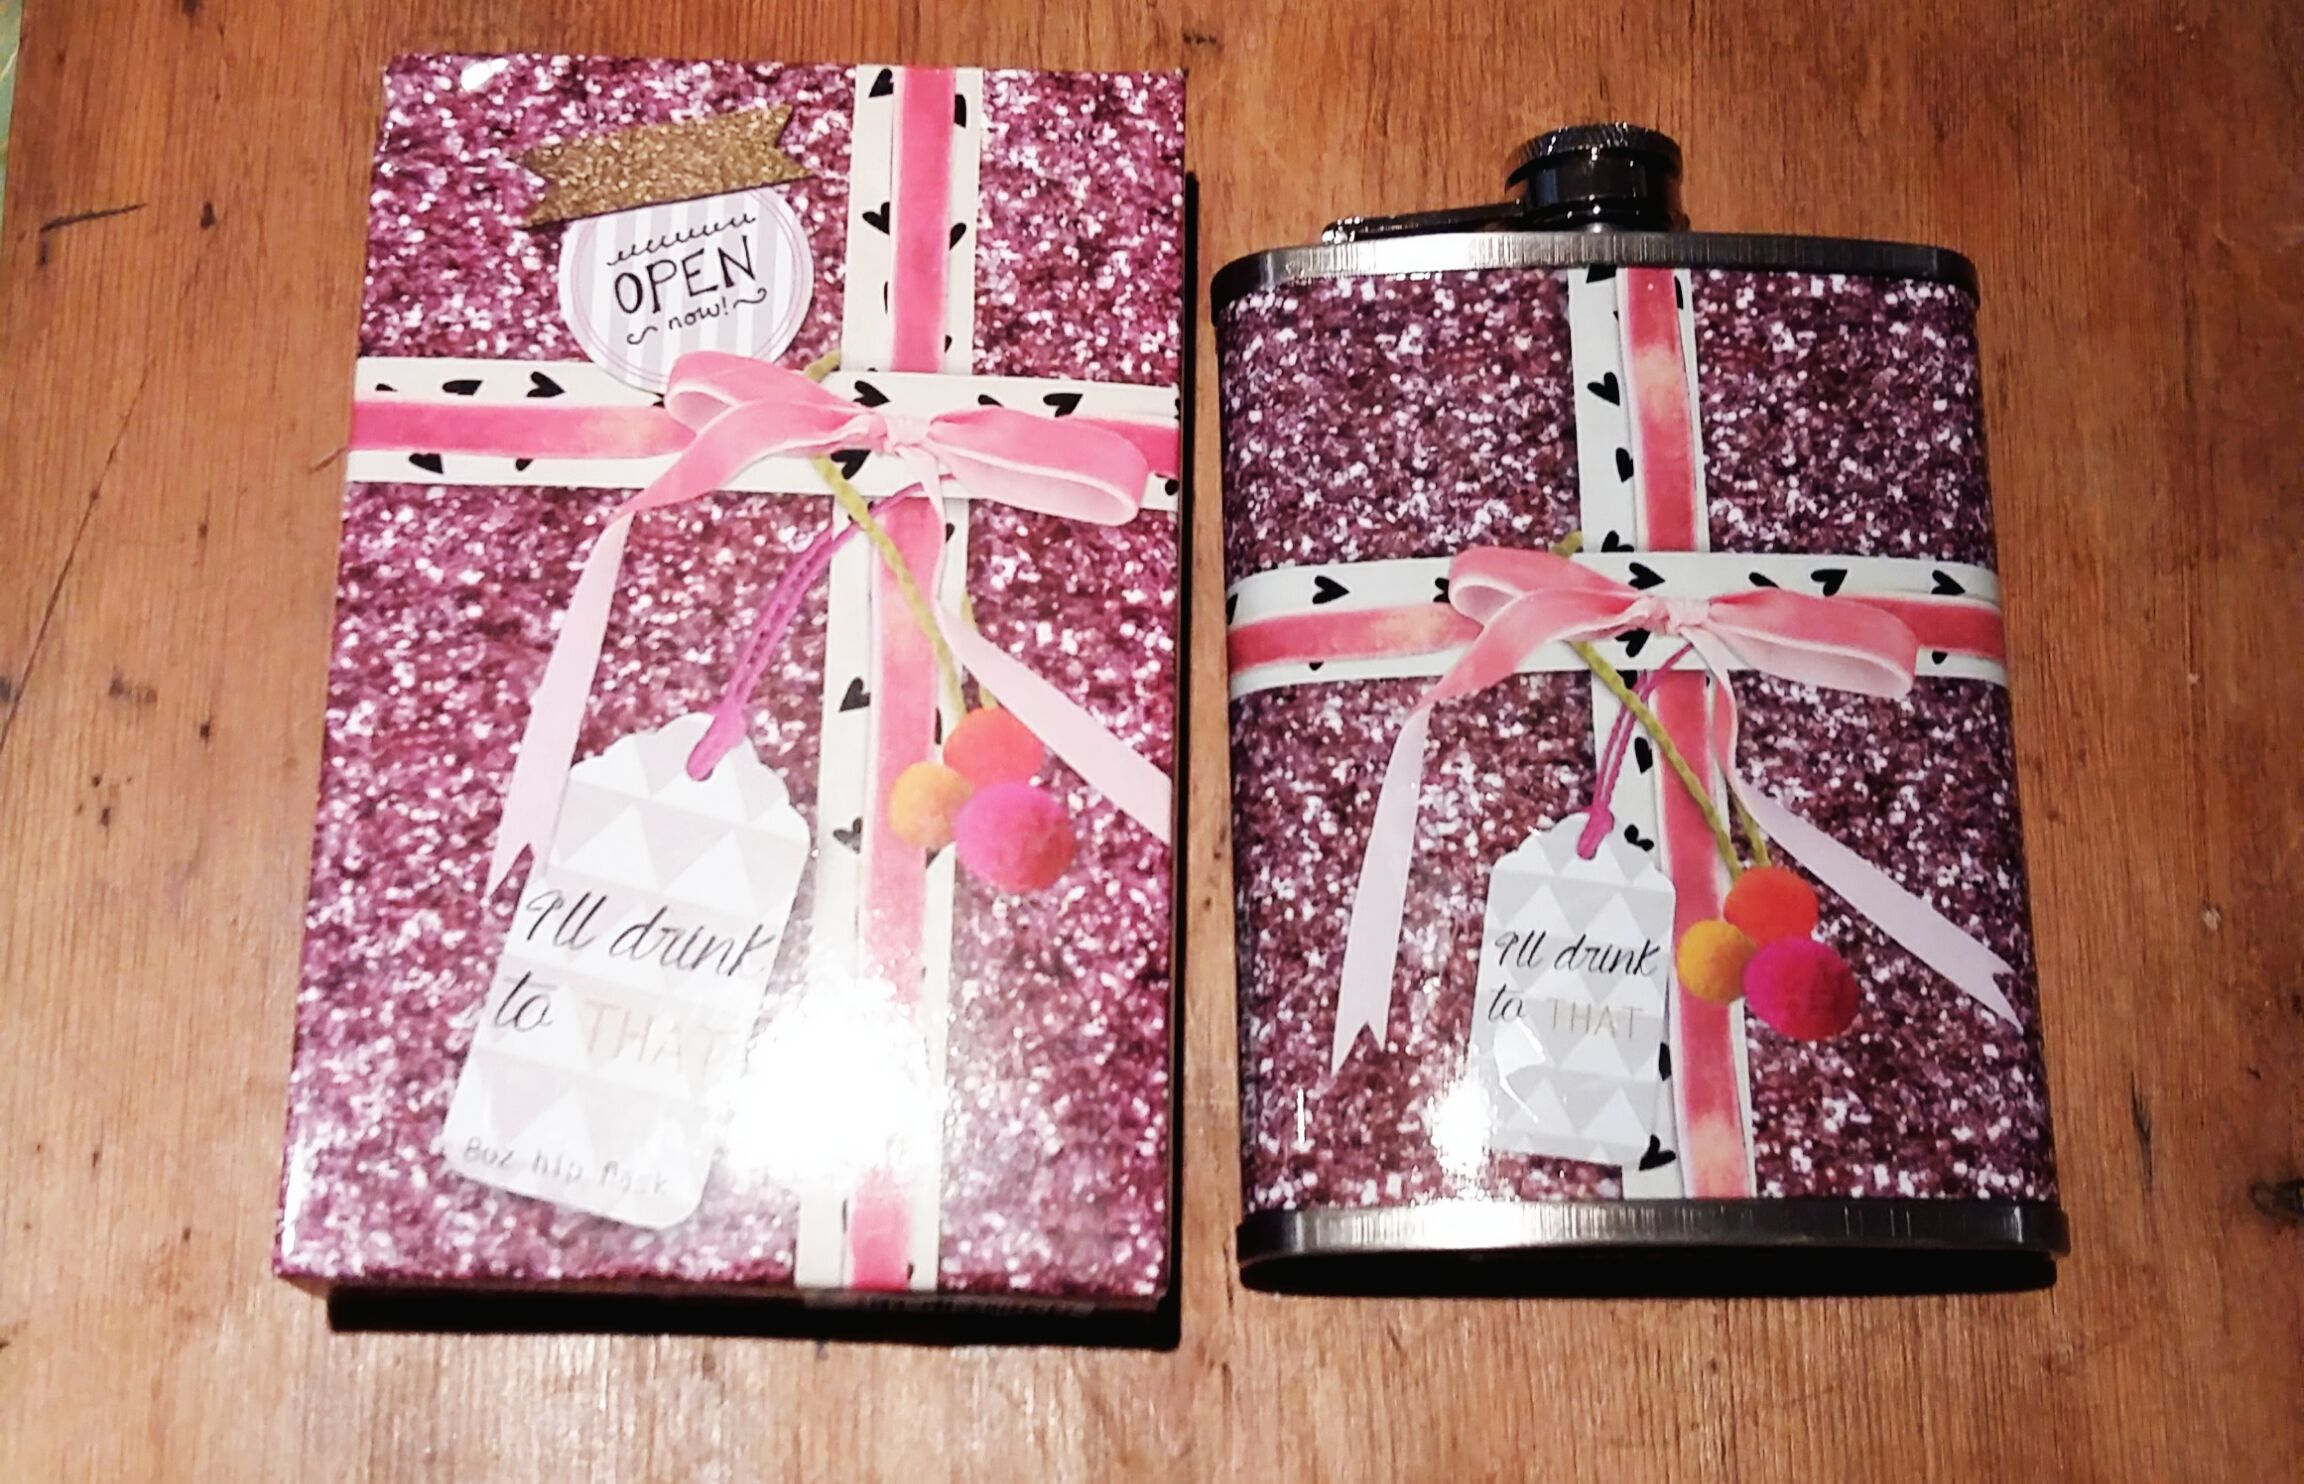 Boxed hip flask handy for Christmas parties